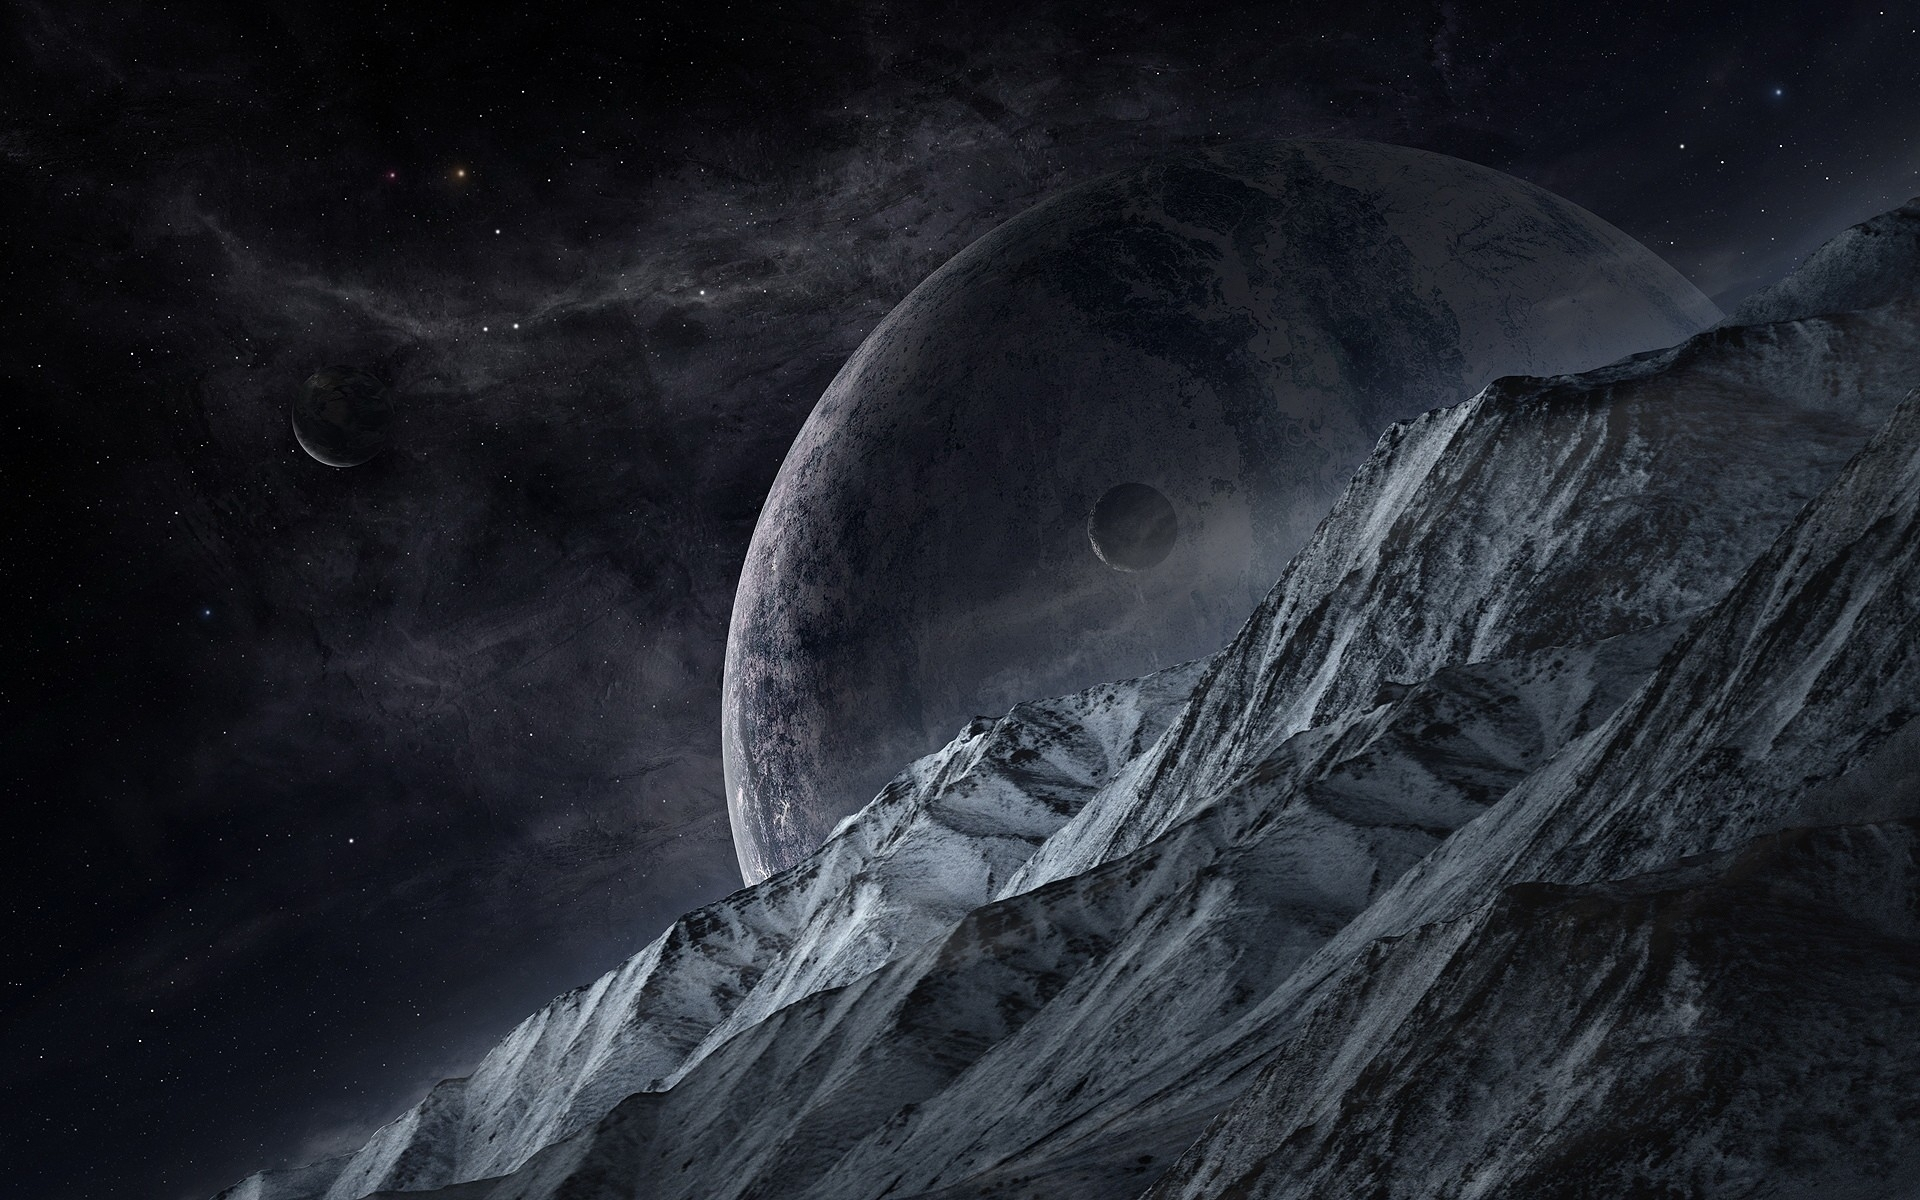 Mountain planets outer space wallpapers mountain planets - Dark space hd ...